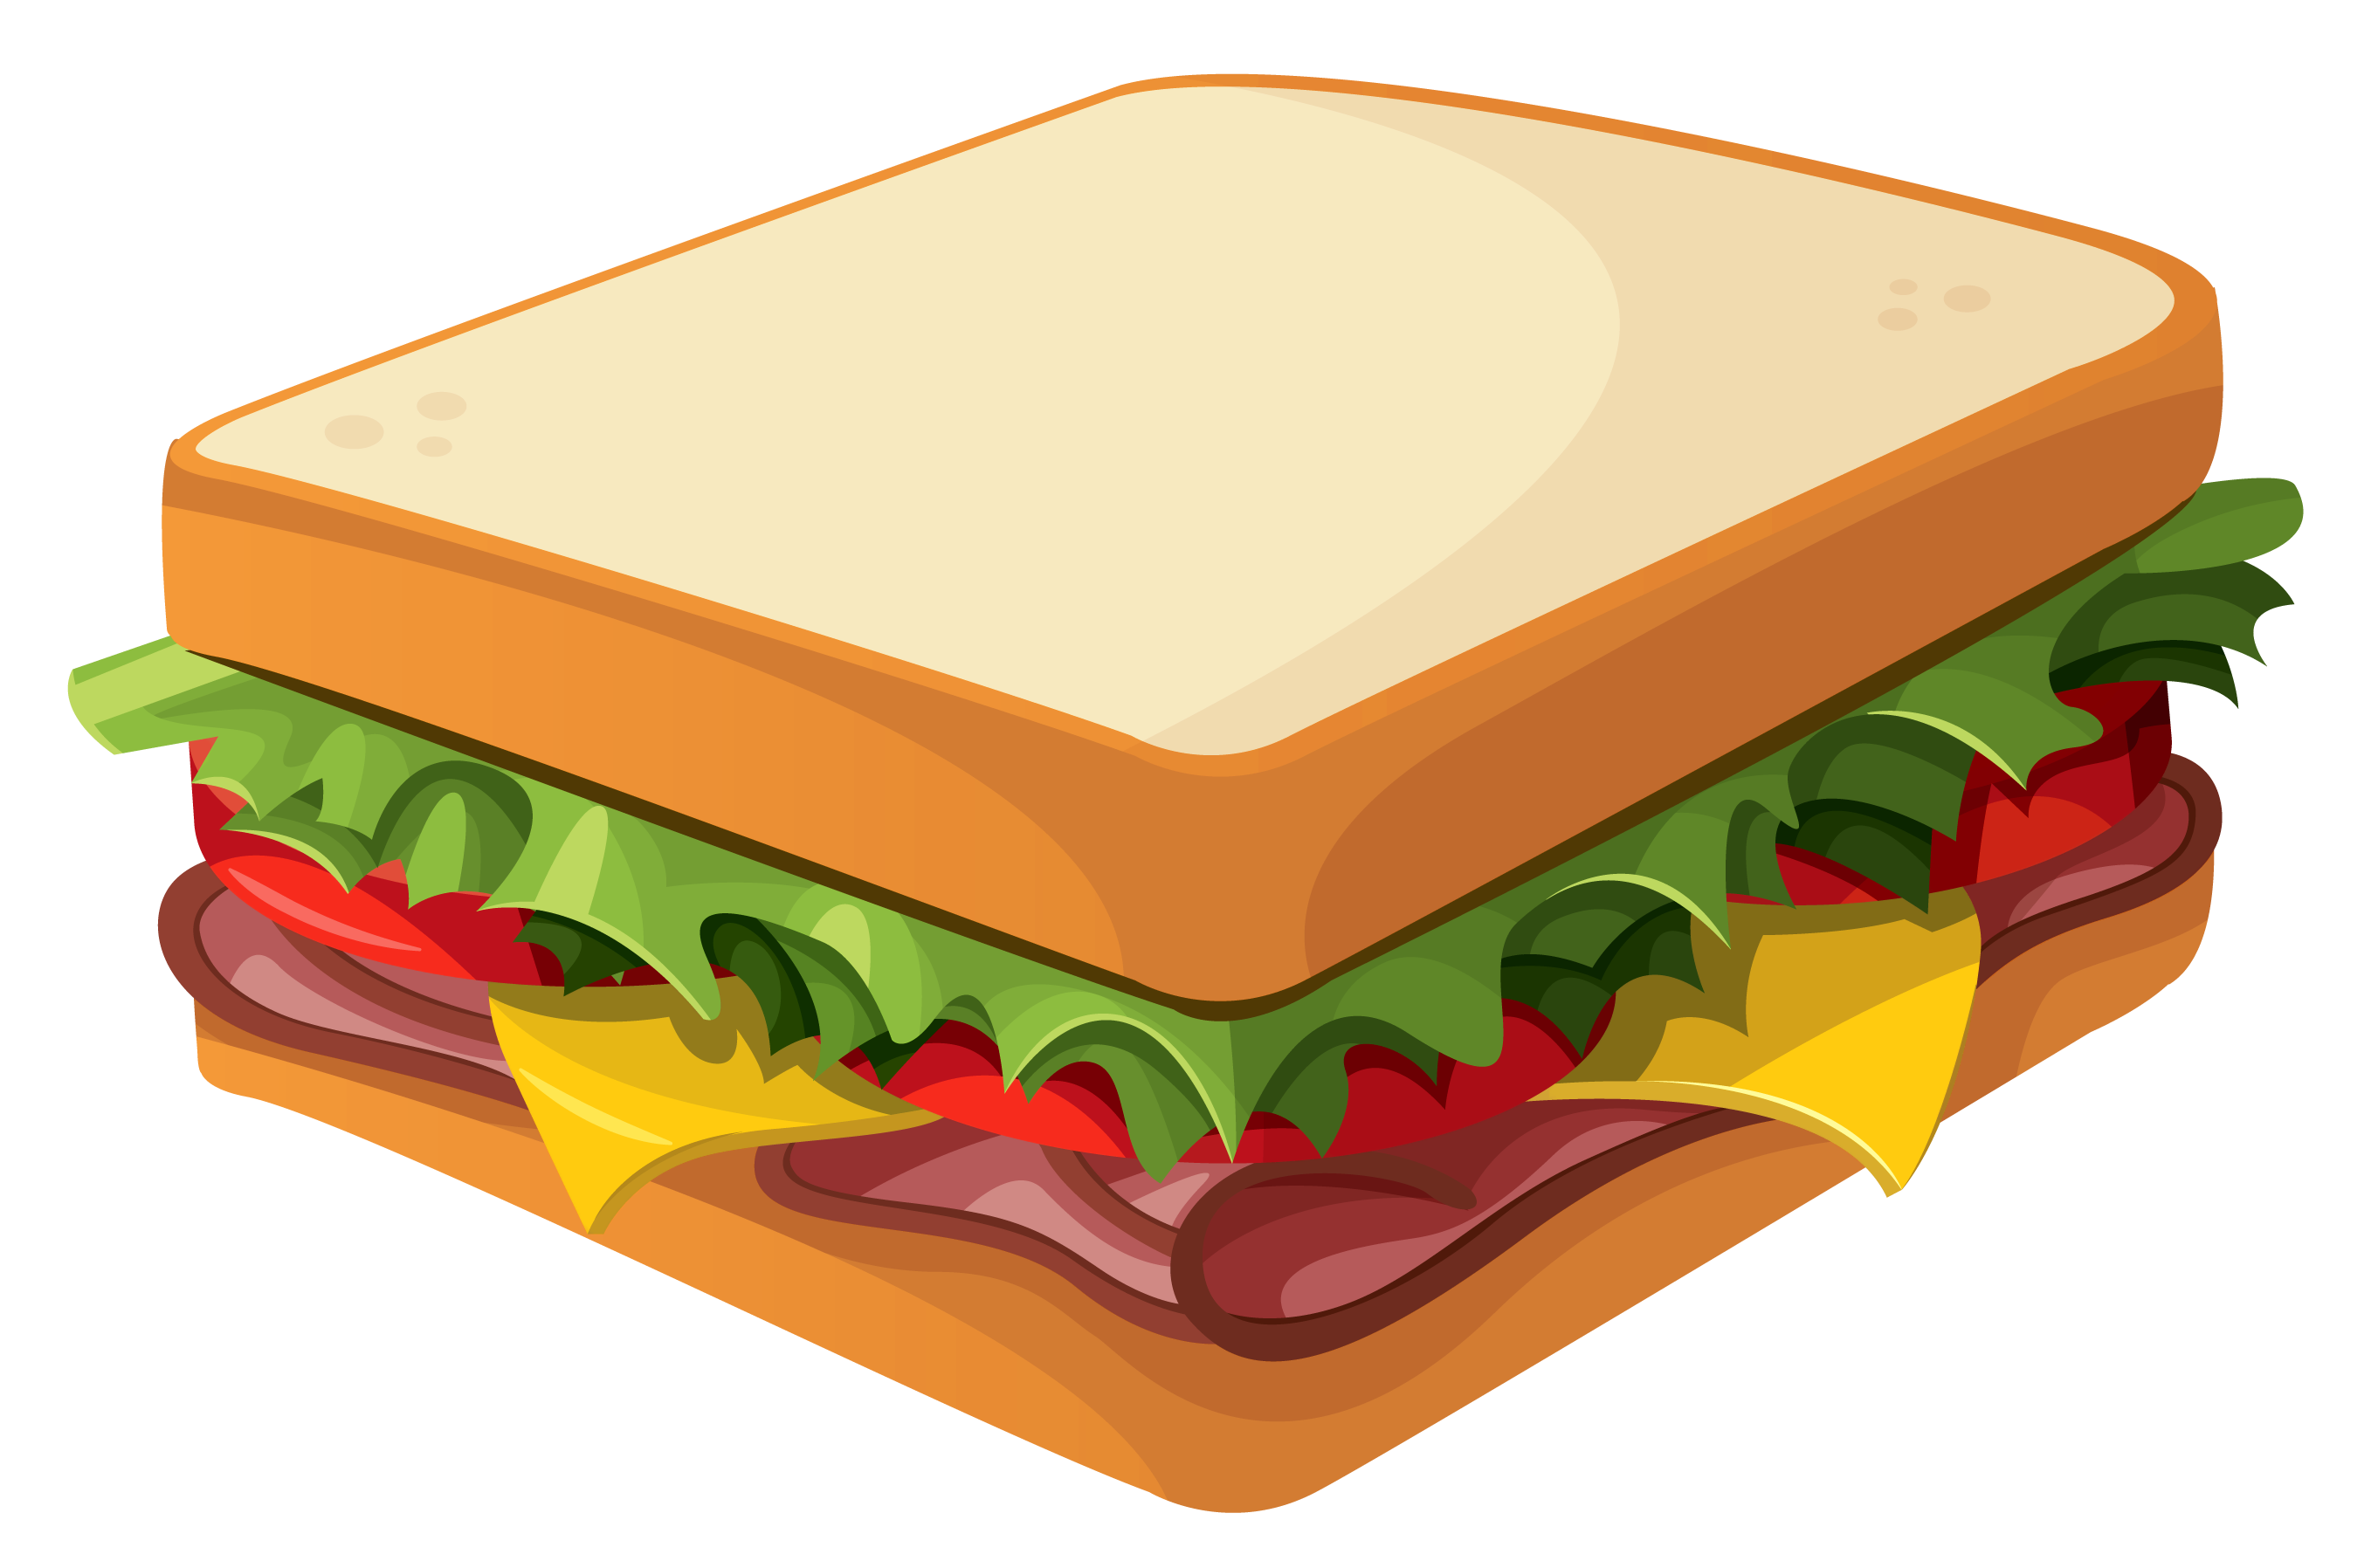 Clipart mountain food. Sandwiches clipground sandwich